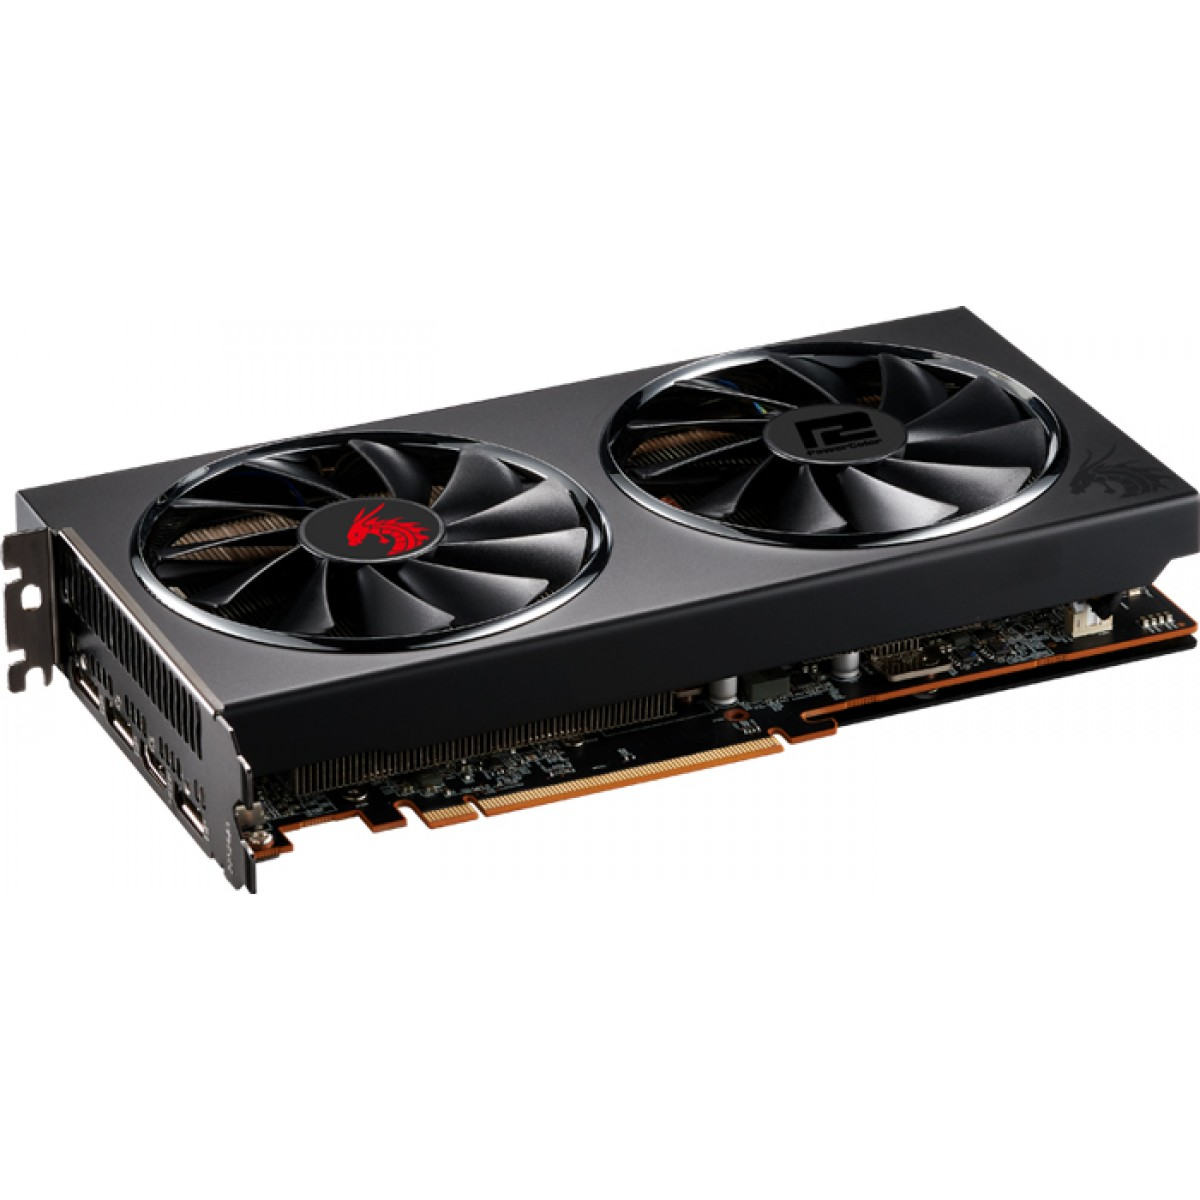 Placa de Vídeo PowerColor Radeon Navi RX 5700 XT Red Dragon, 8GB GDDR6, 256Bit, AXRX 5700 XT 8GBD6-3DHR/OC